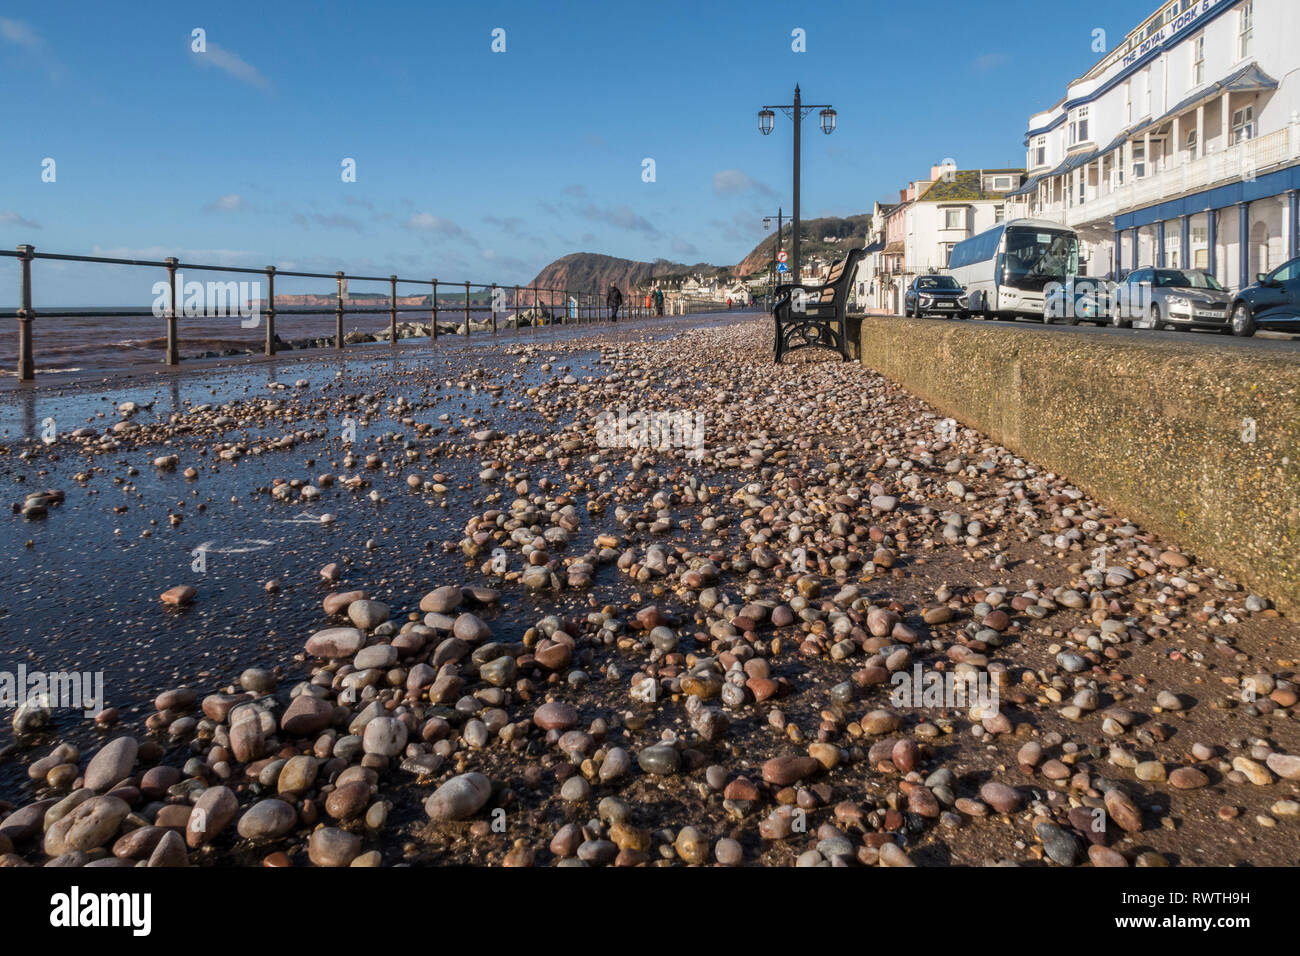 Pebble and shale from the beach thrown onto the seafront Esplanade at Sidmouth by a storm. Stock Photo